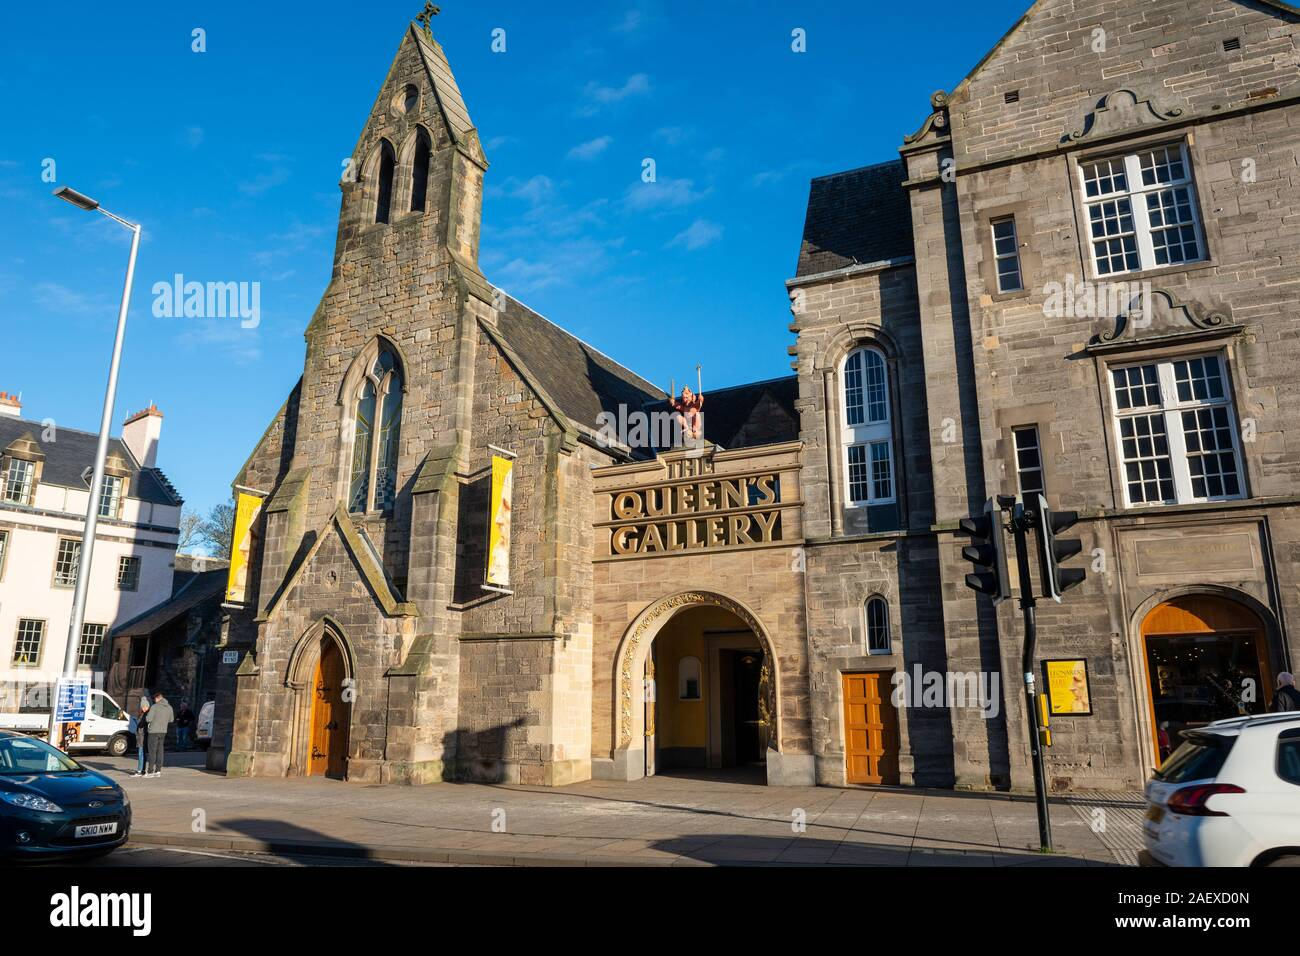 Exterior of the Queen's Gallery, part of the Palace of Holyroodhouse complex, on Cannongate in Edinburgh, Scotland, UK Stock Photo